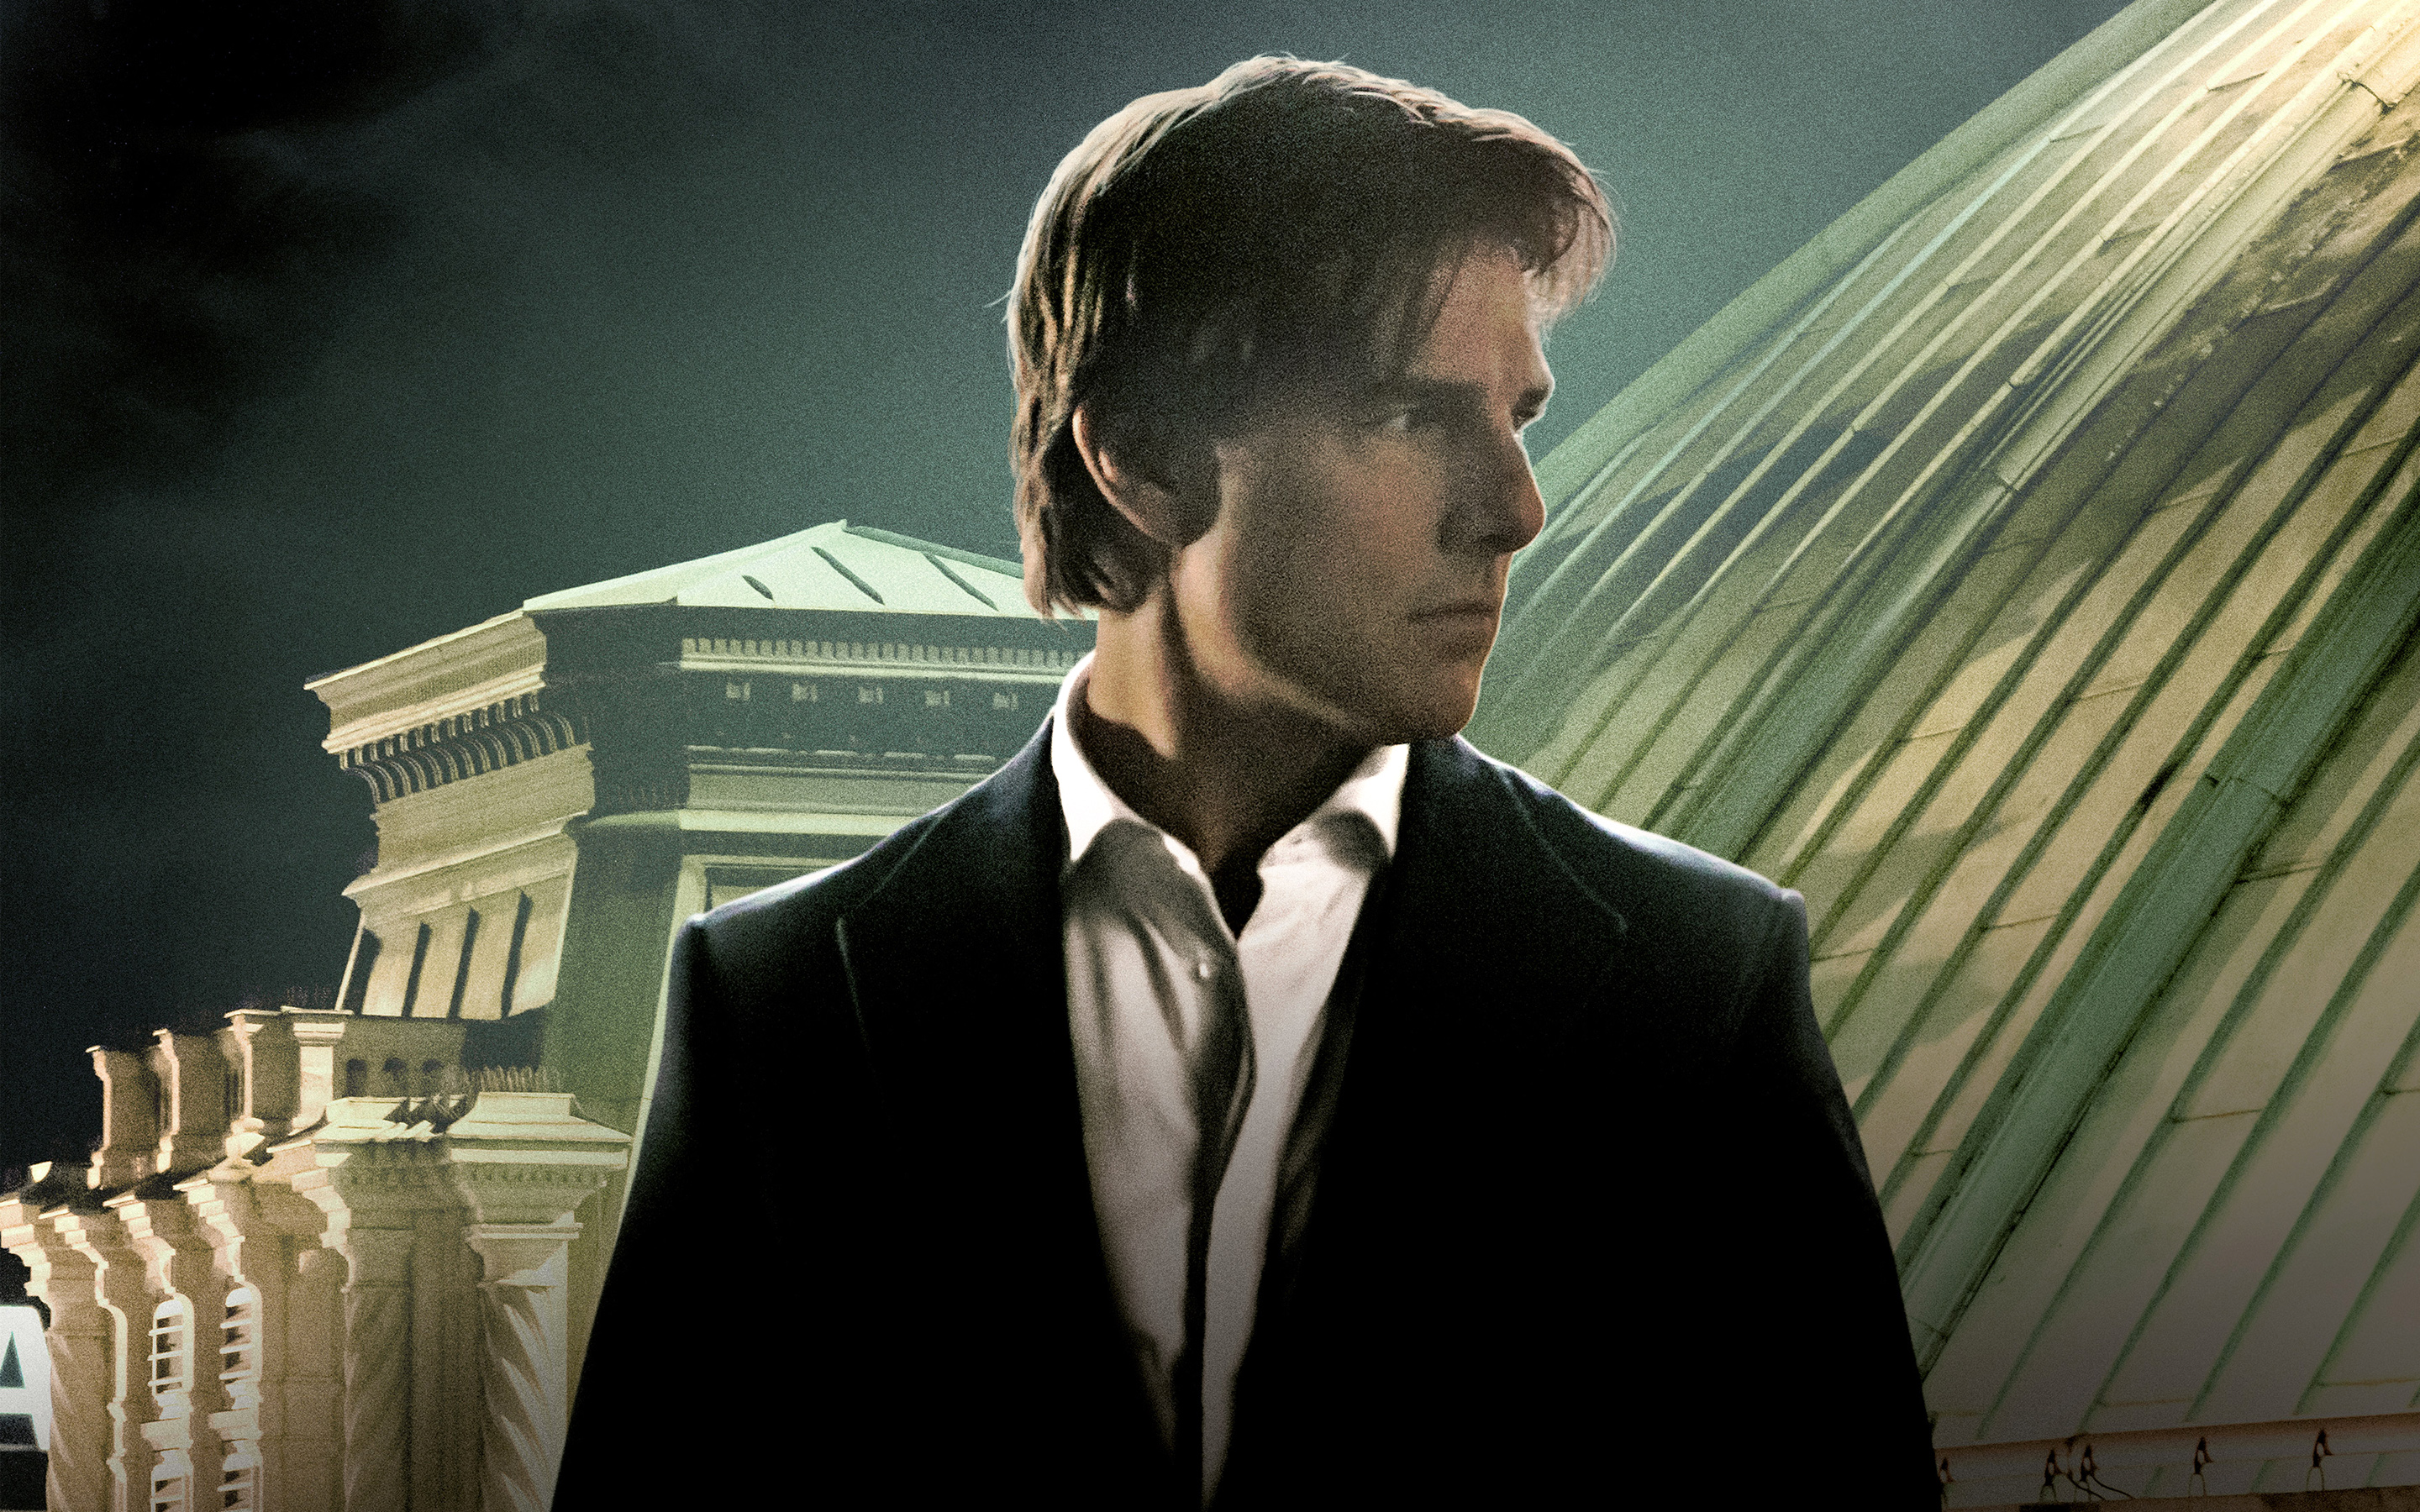 HD Wallpapers Mission Impossible Rogue Nation Tom Cruise